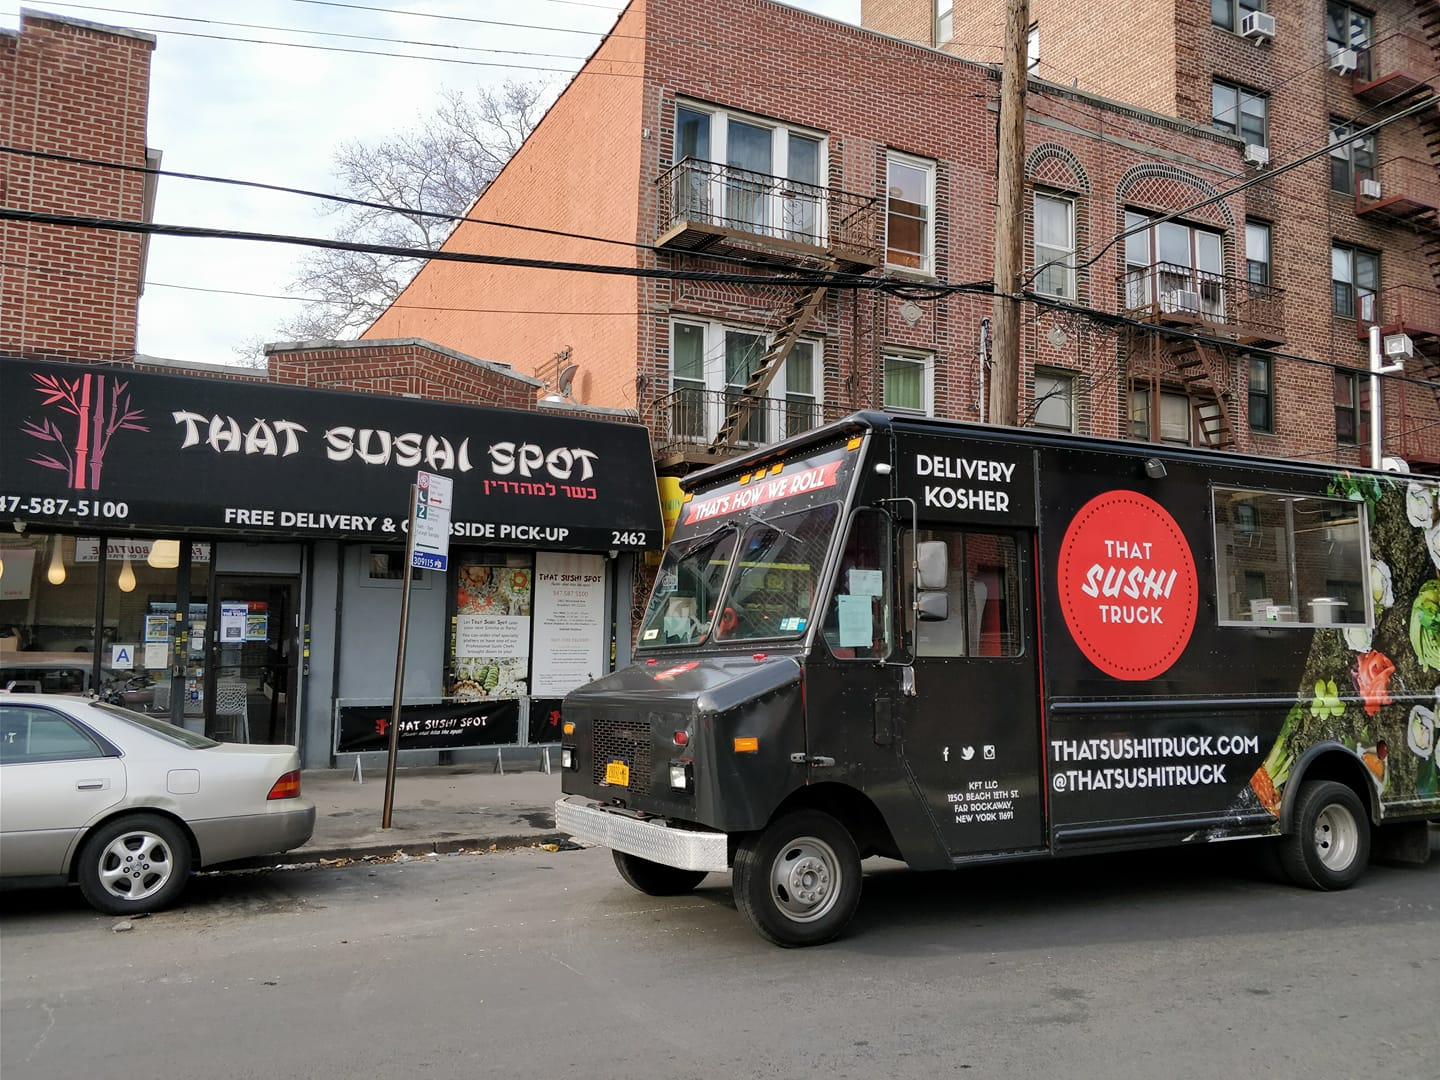 Japanese Cuisine Food Truck Kosher Sushi Food Truck Hits The Streets Of Nyc That